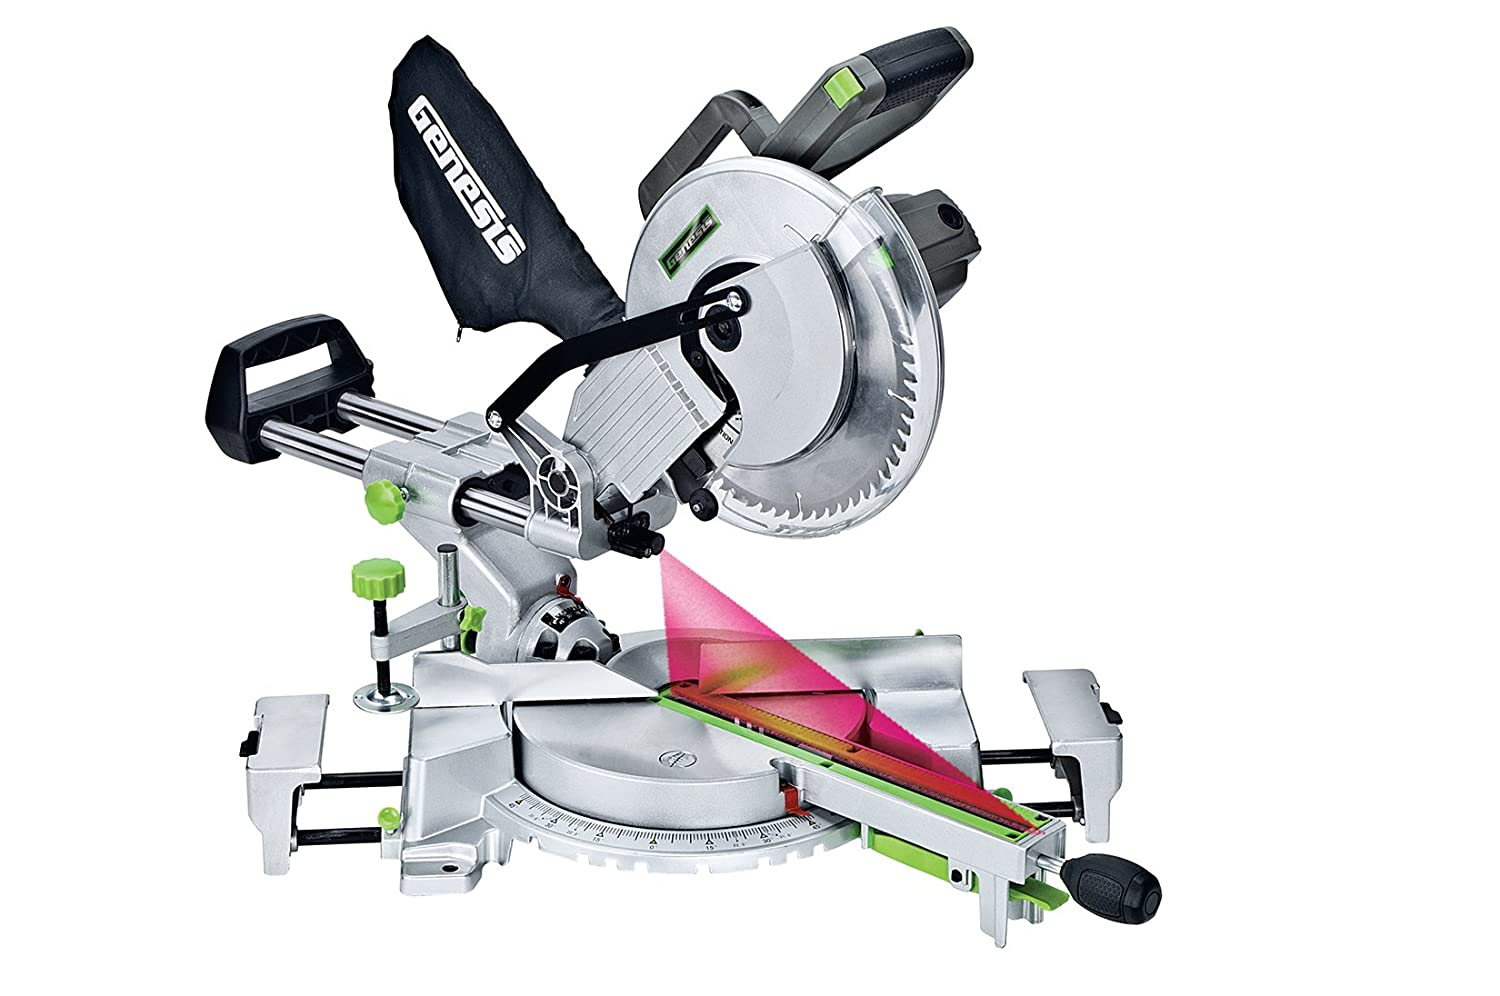 Genesis GMSDR1015LC 15-Amp 10-Inch Sliding Compound Miter Saw, Grey